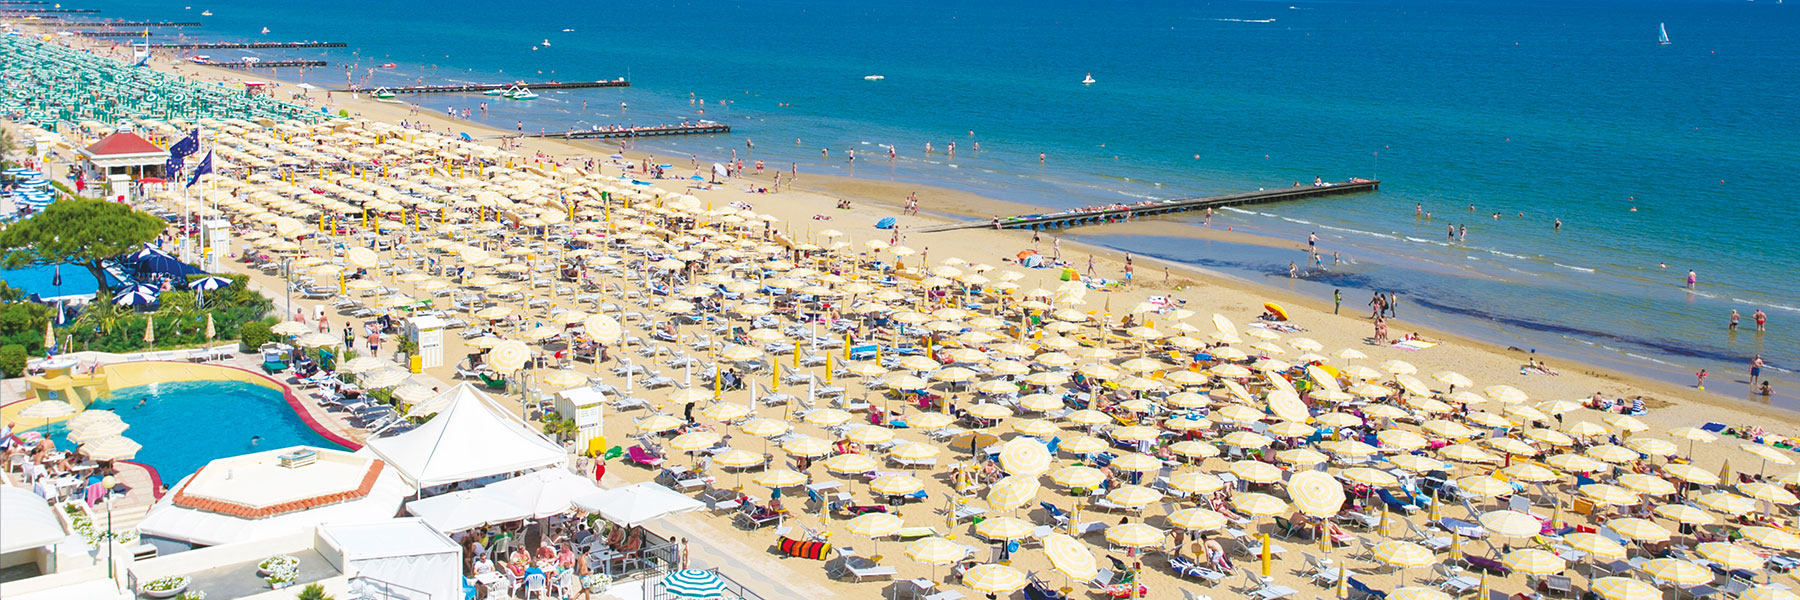 Lido di Jesolo, which is lined with parasols , and where many people take a swim in the turquoise Mediterranean Seasea.